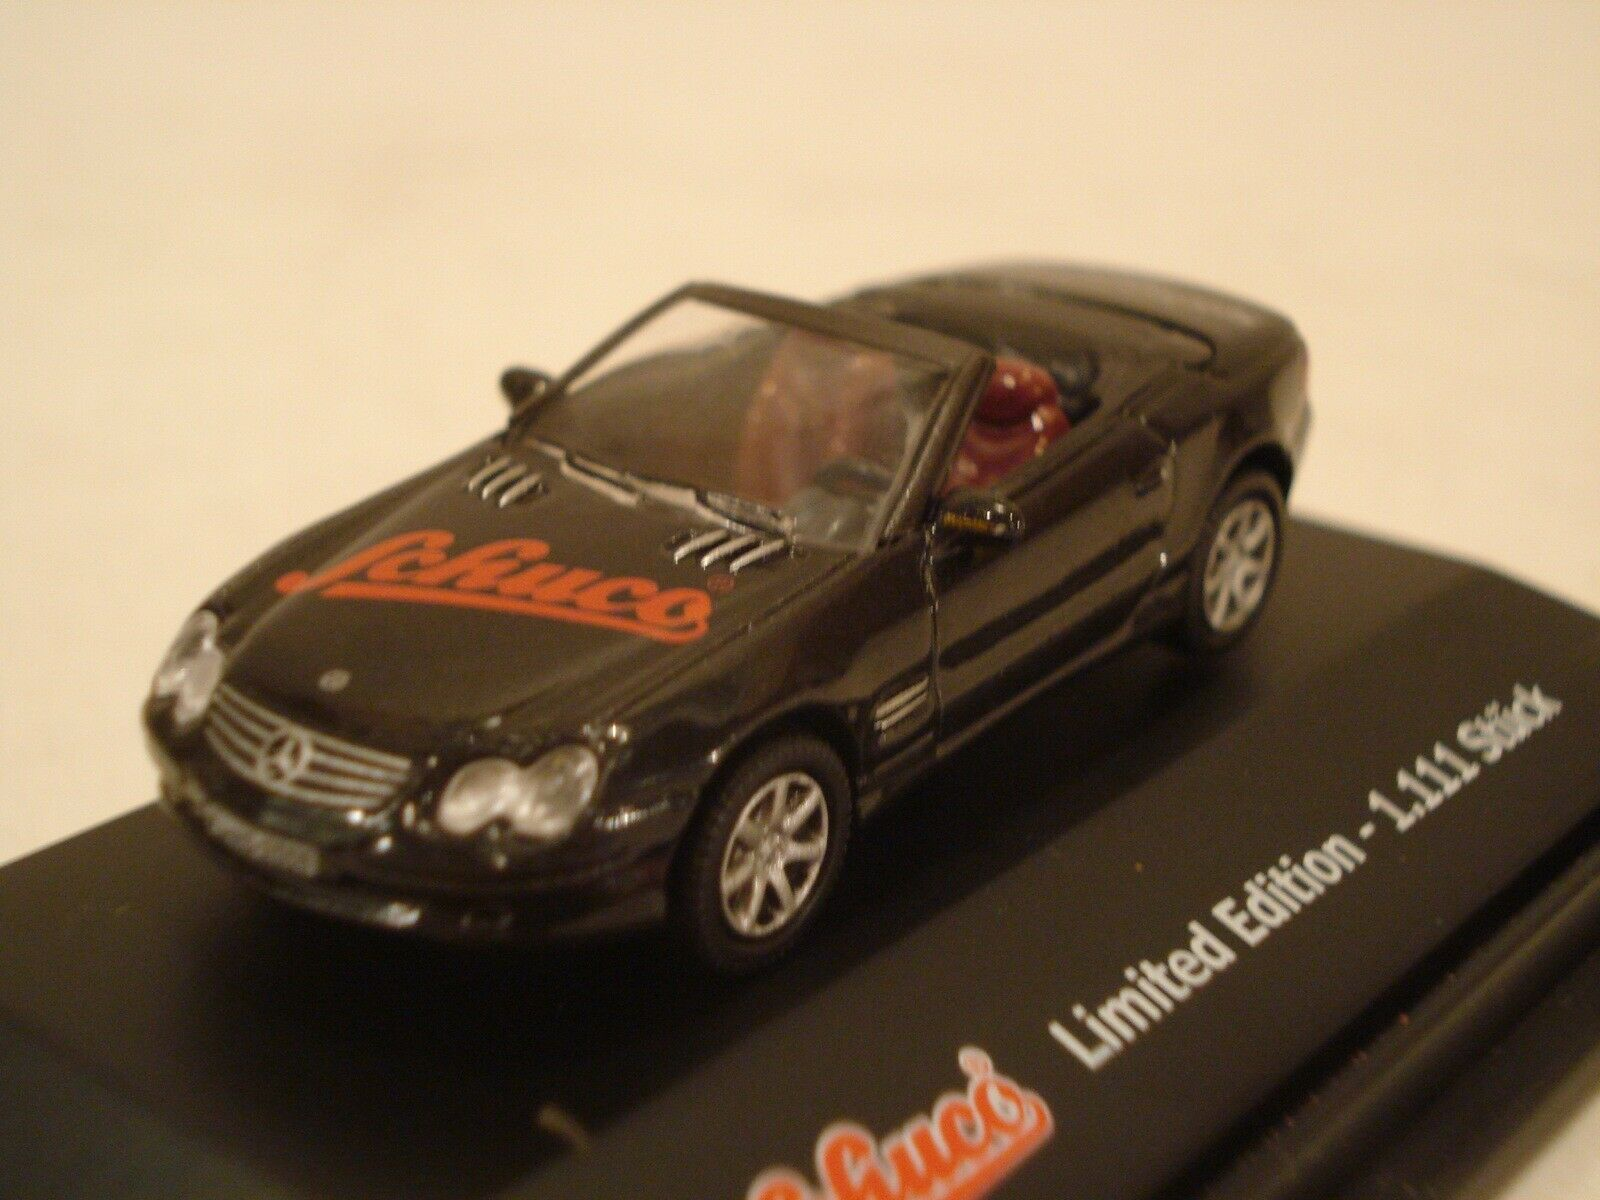 SCHUCO HO Edition Mercedes-Benz 500Sl Cabriolet magasin messe 1 87 Diecast NEW IN BOX